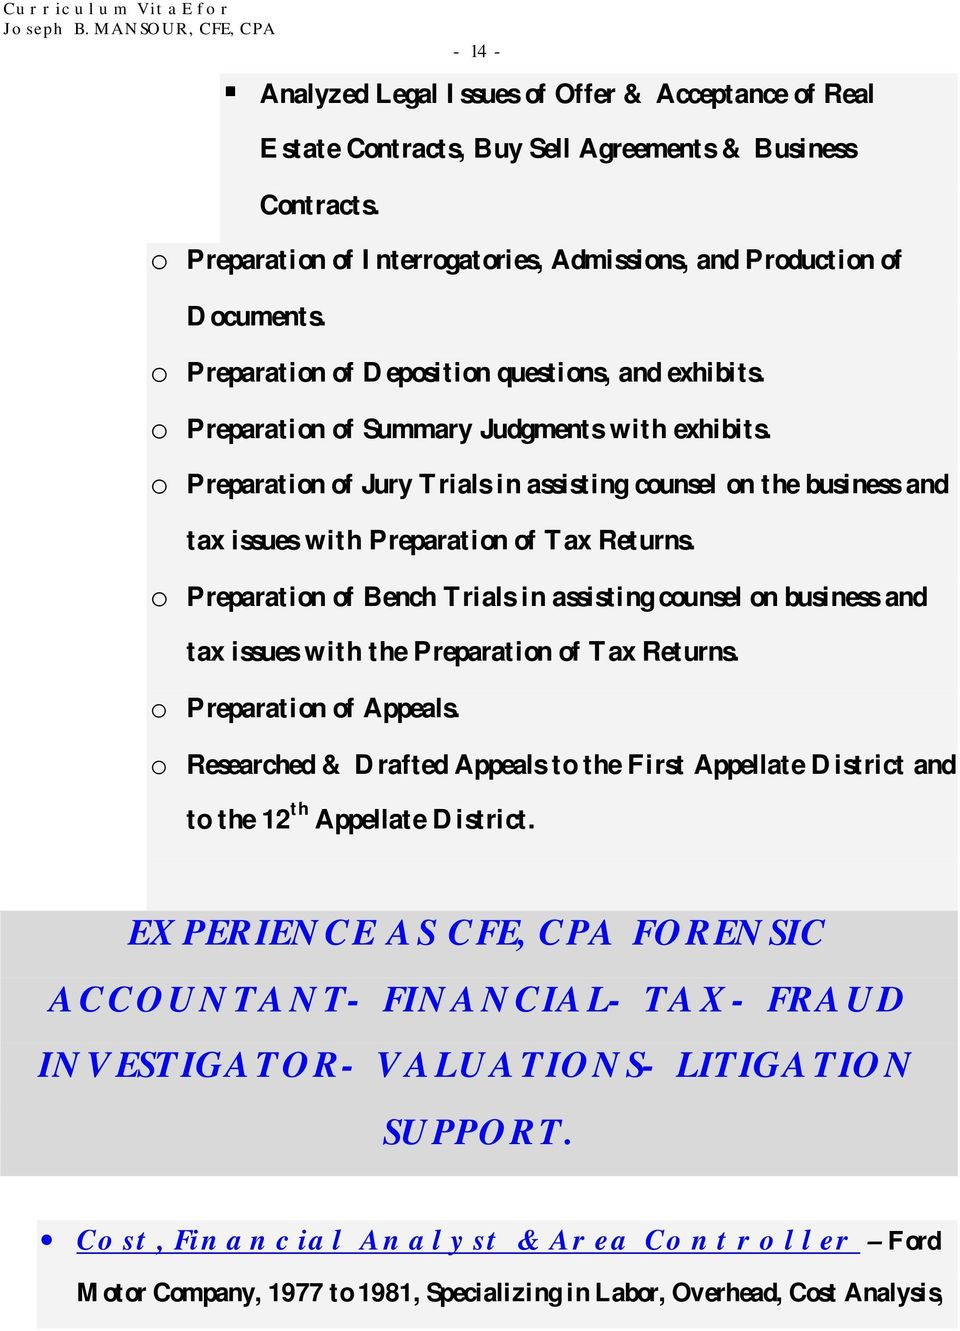 o Preparation of Jury Trials in assisting counsel on the business and tax issues with Preparation of Tax Returns.